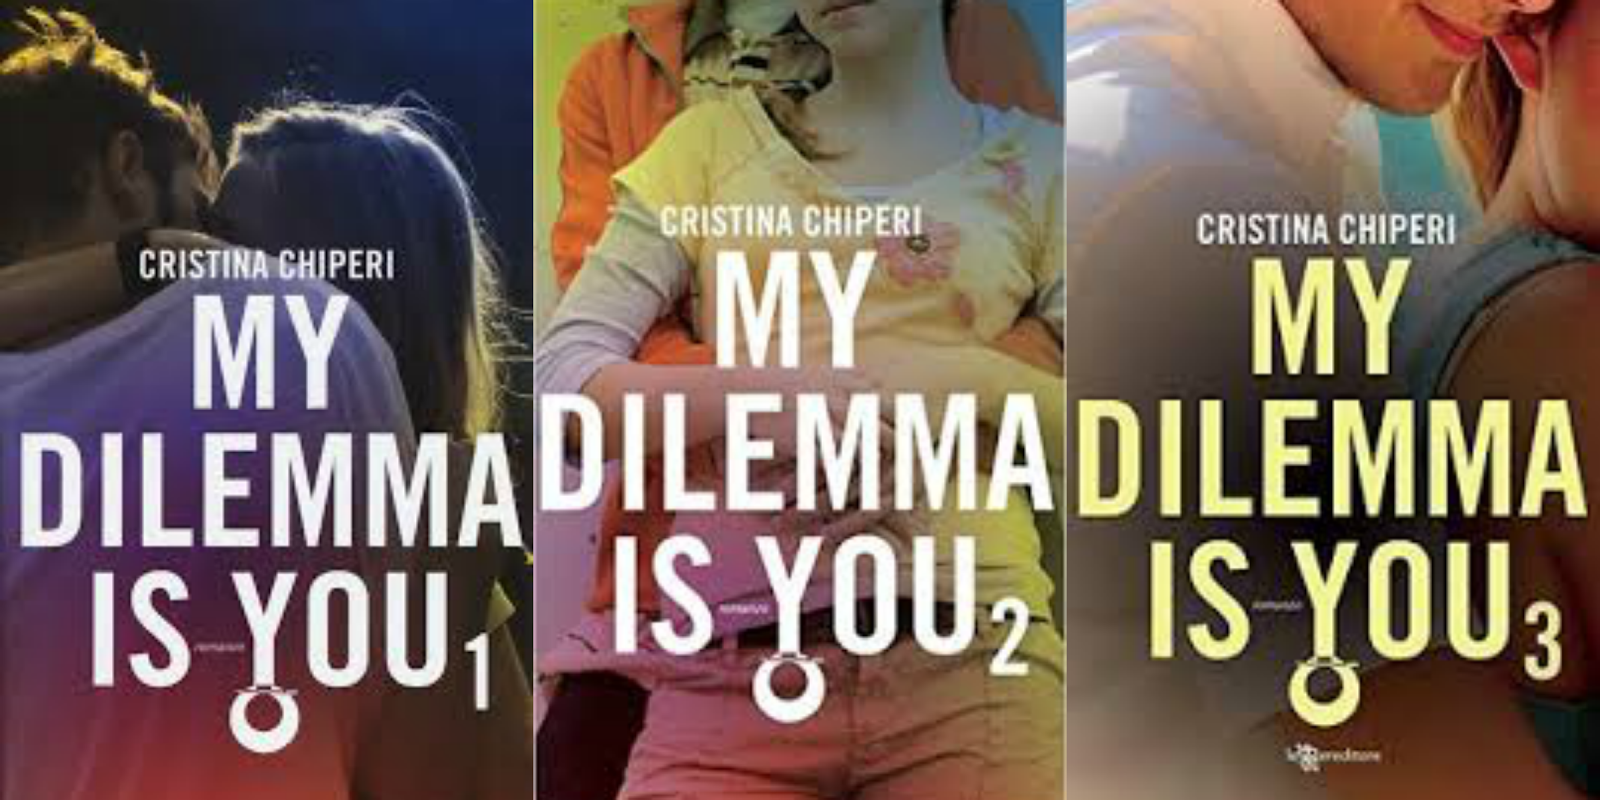 my dilemma is you - il libro